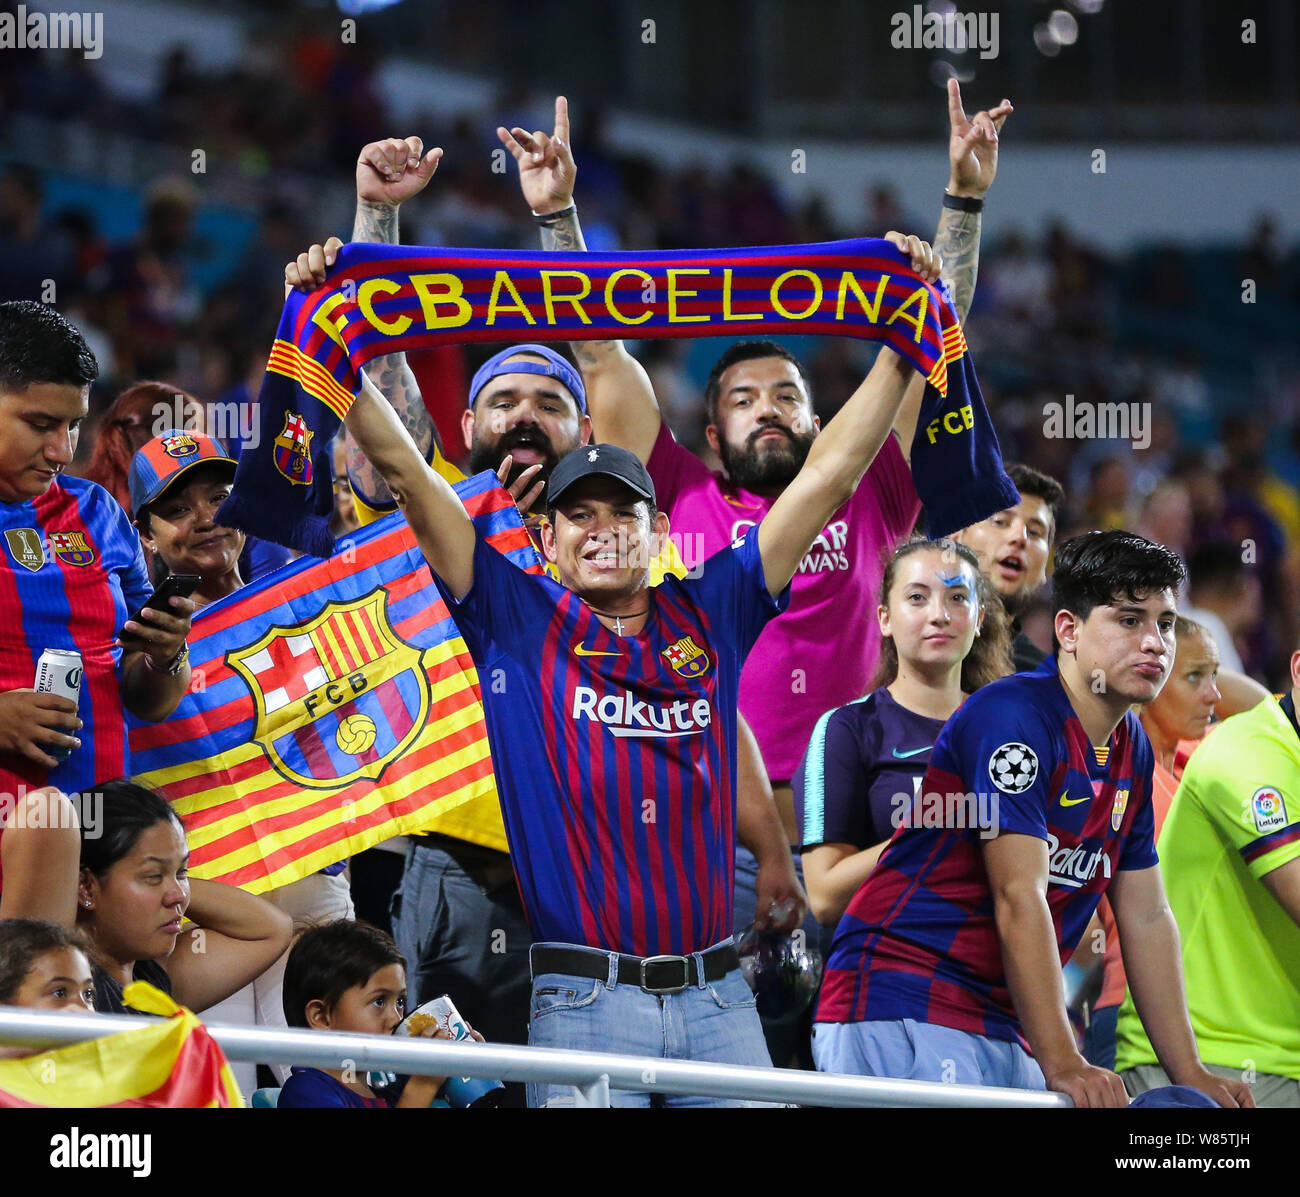 barcelona fans high resolution stock photography and images alamy https www alamy com miami gardens florida usa 7th aug 2019 fc barcelona fans pose for the camera during a friendly match between fc barcelona and ssc napoli at the hard rock stadium in miami gardens florida credit mario houbenzuma wirealamy live news image263201865 html